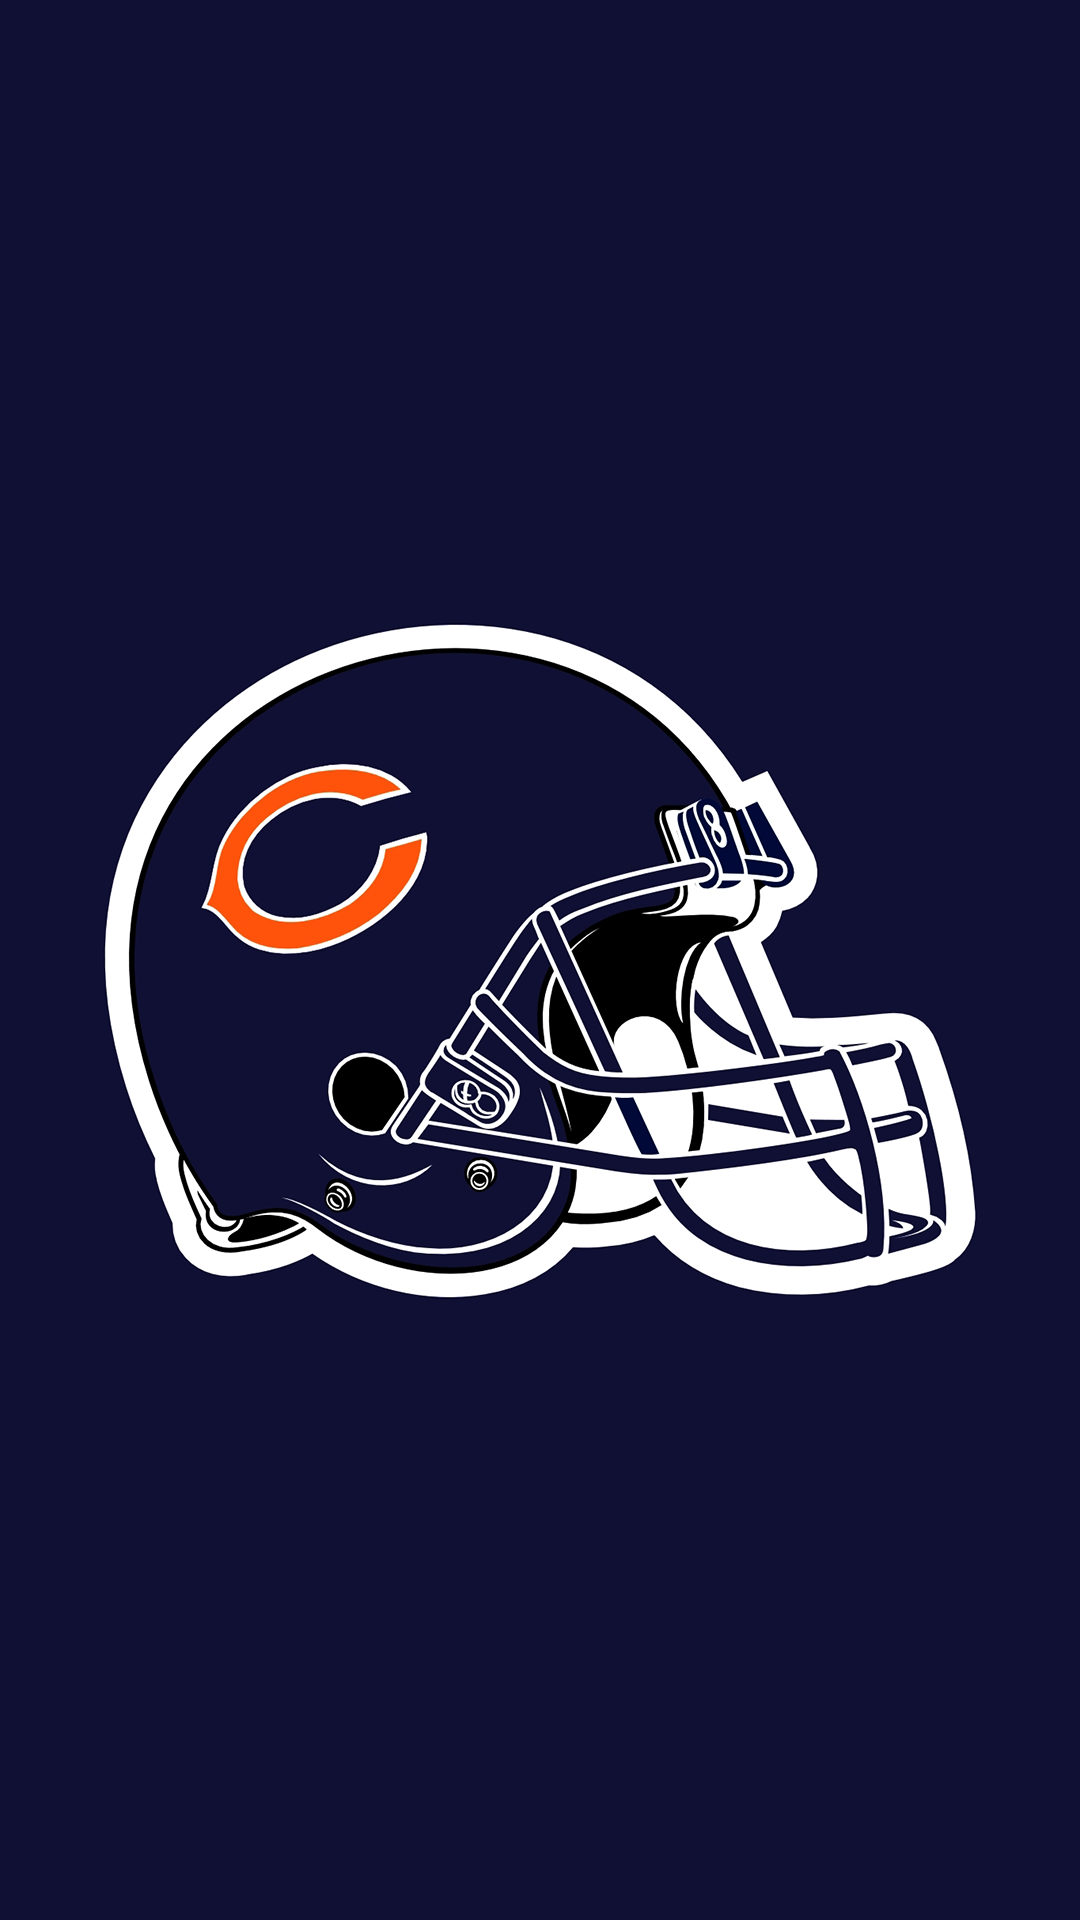 Chicago Bears Desktop Wallpapers (74 Wallpapers) – HD Wallpapers